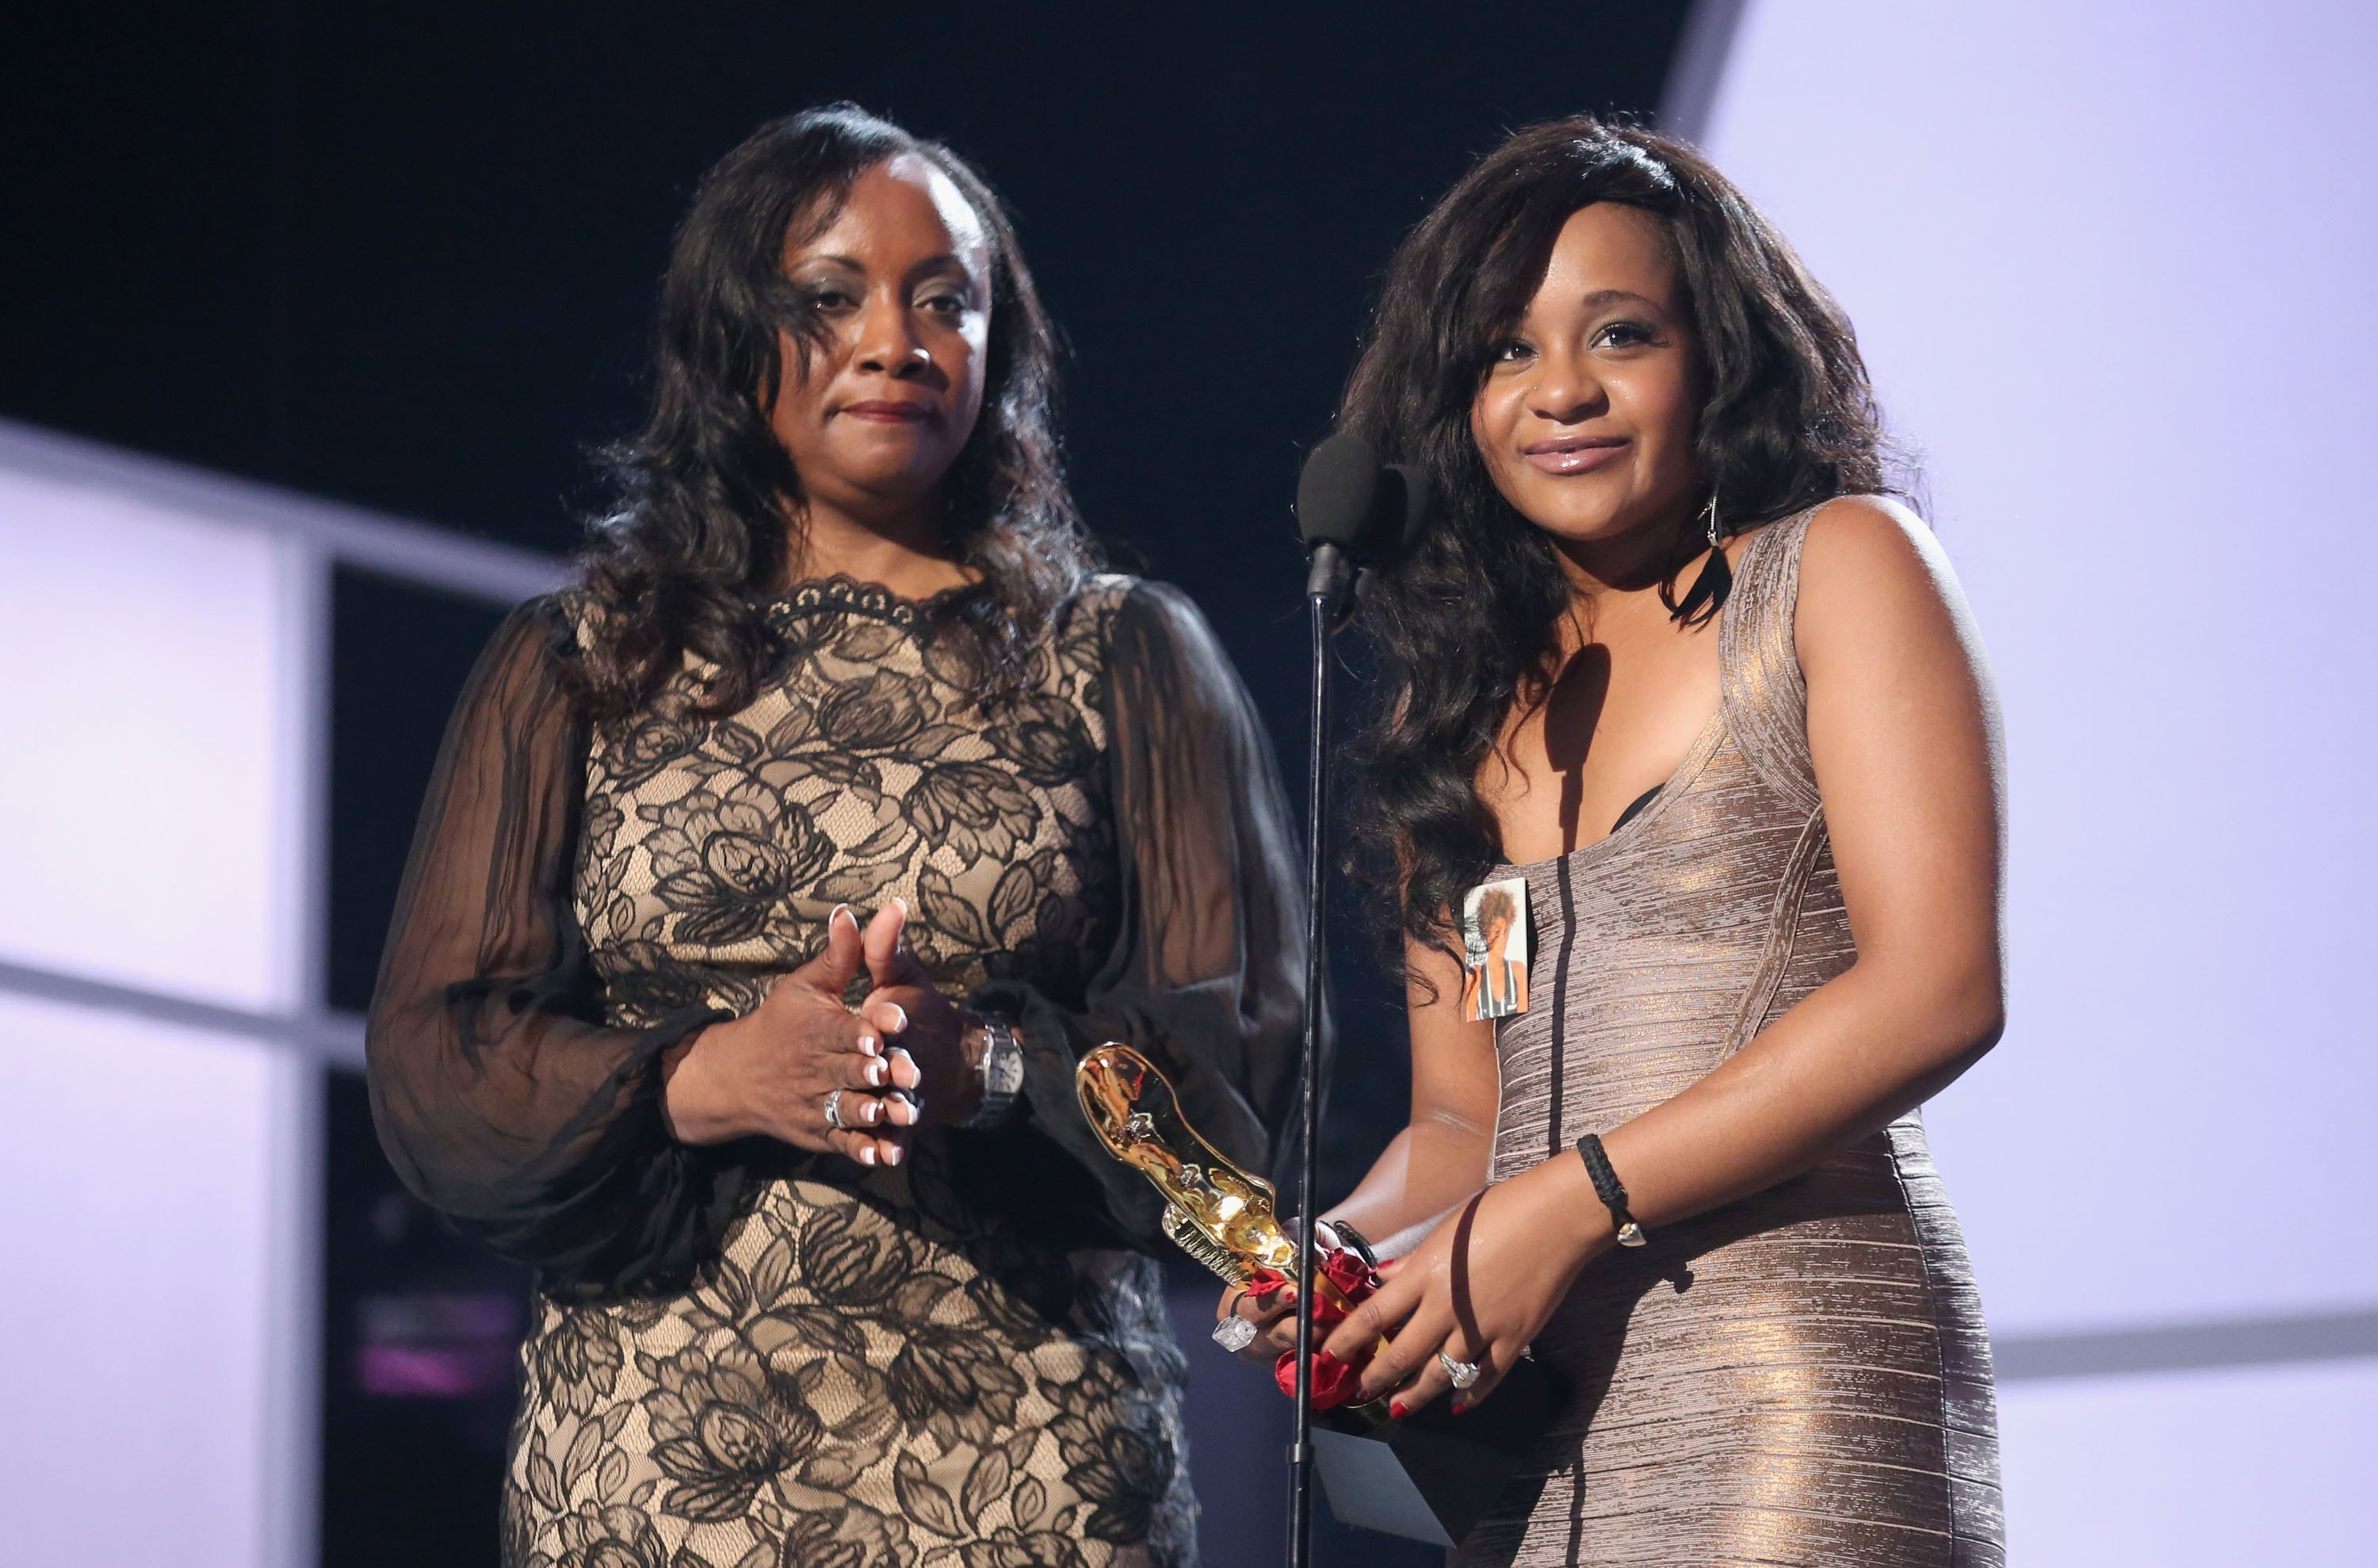 Bobbi Kristina Brown & her aunt Pat accept the Millennium Award on behalf of Whitney Houston at the Billboard Music Awards in 2012 | Photo: Getty Images